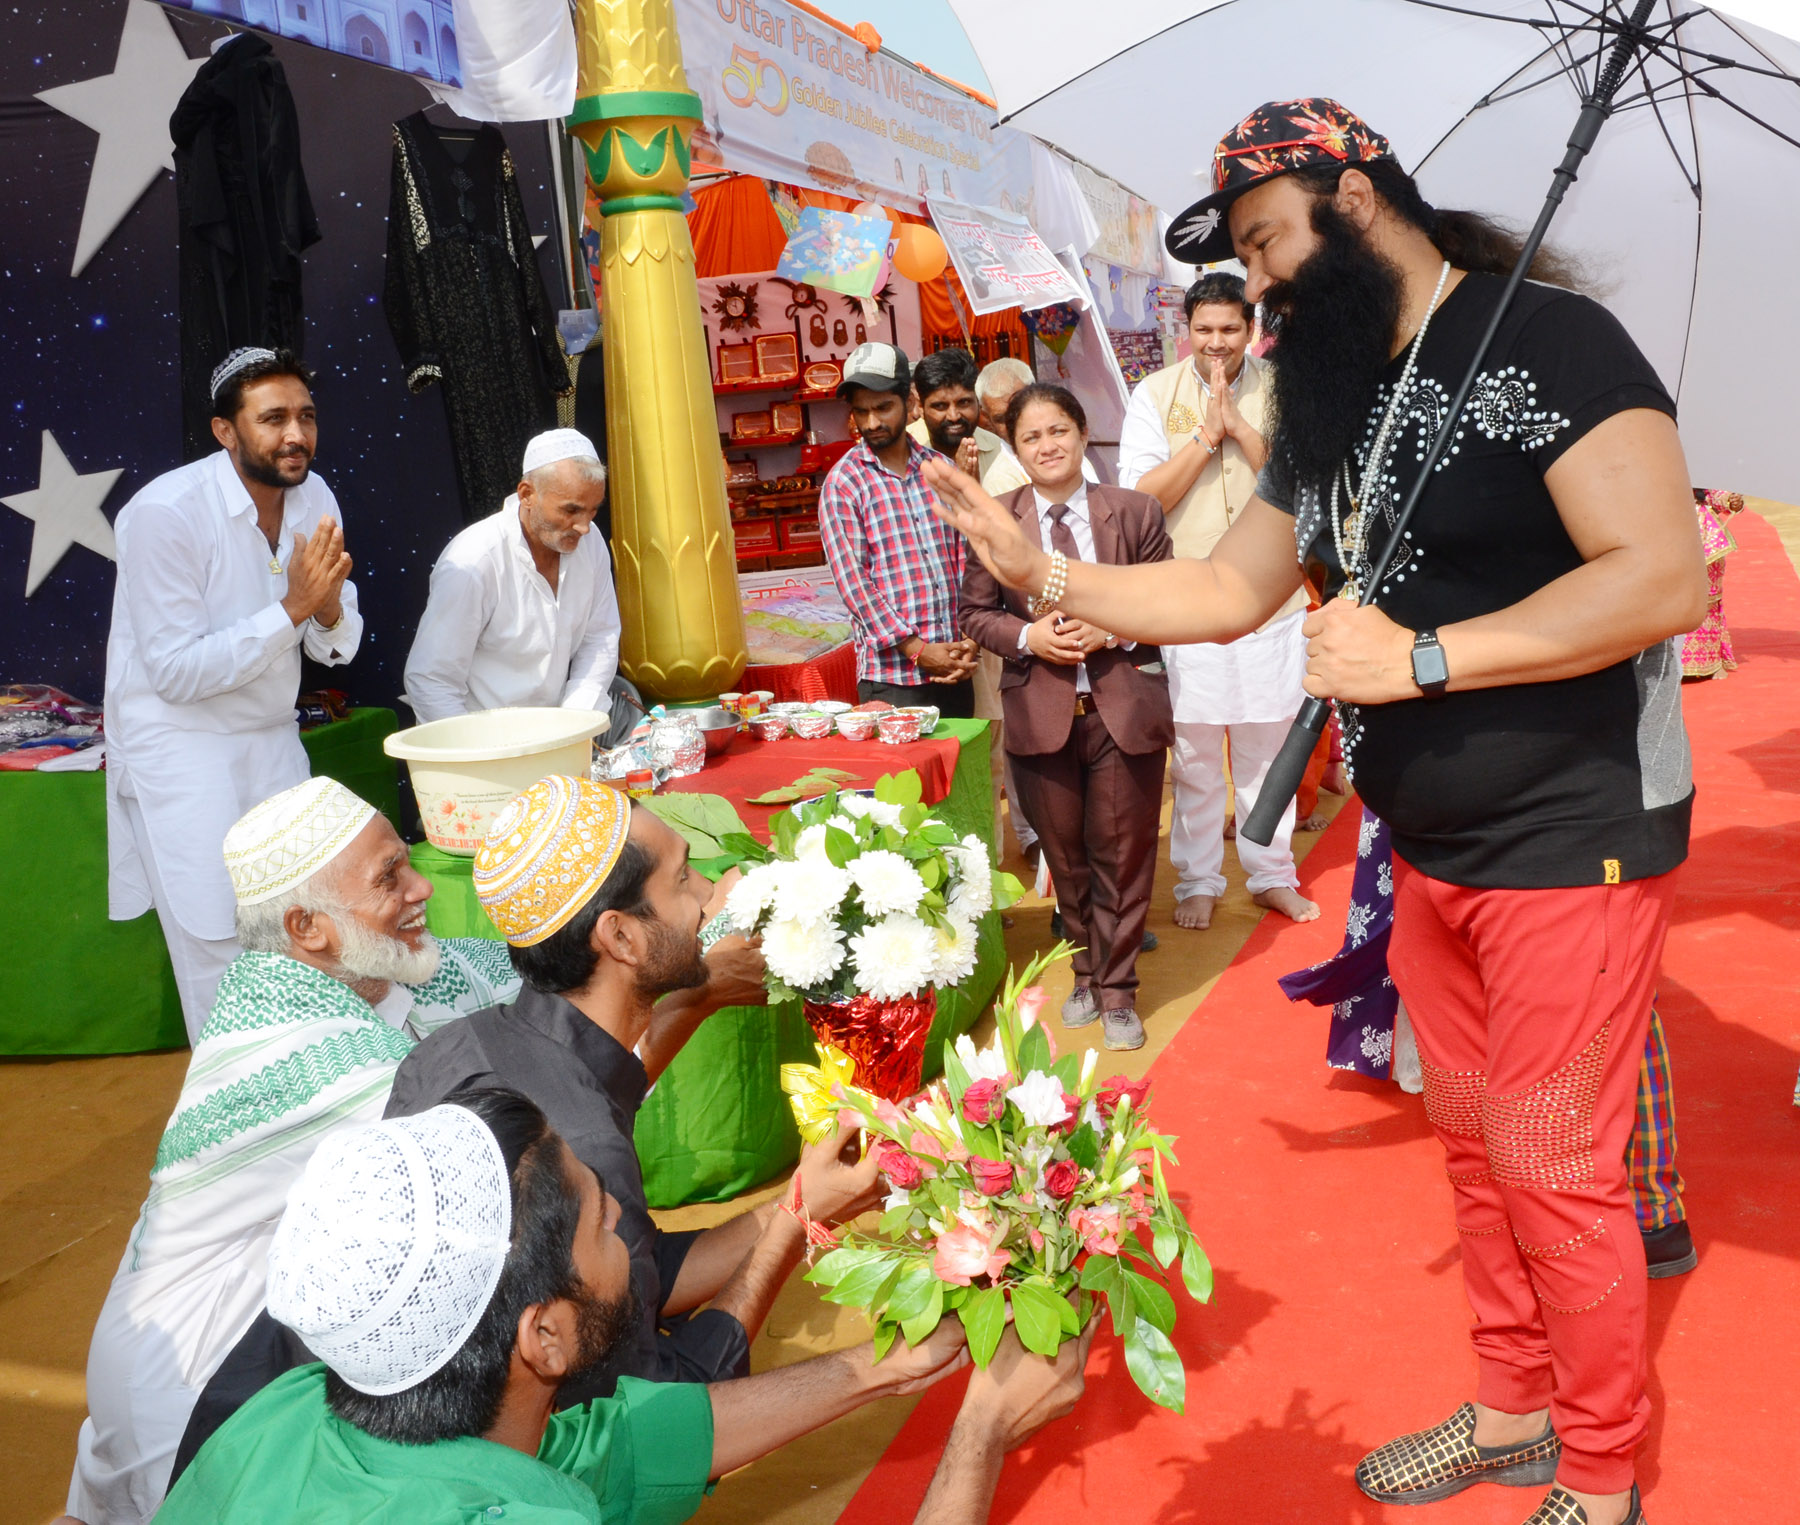 Gurmeet Ram Rahim Singh with followers. Credit: www.saintdrmsginsan.me